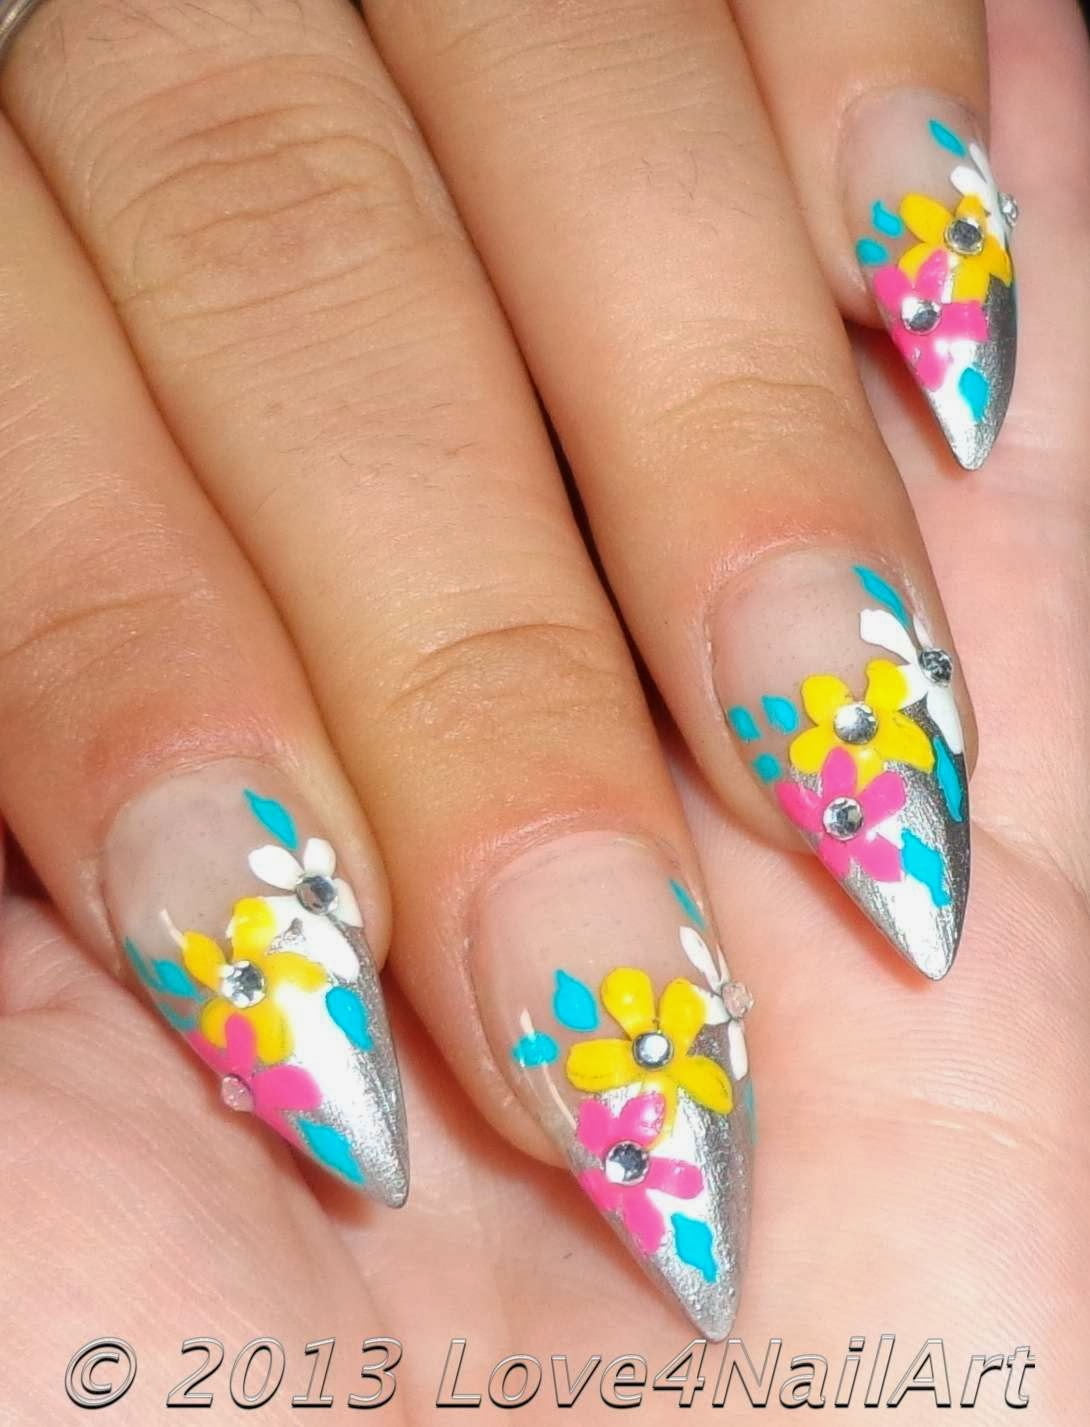 Stiletto Nails Fake Nails Matte Nails Blue Press On Nails: Love4NailArt: Flowery Nail Art For Stiletto Nails